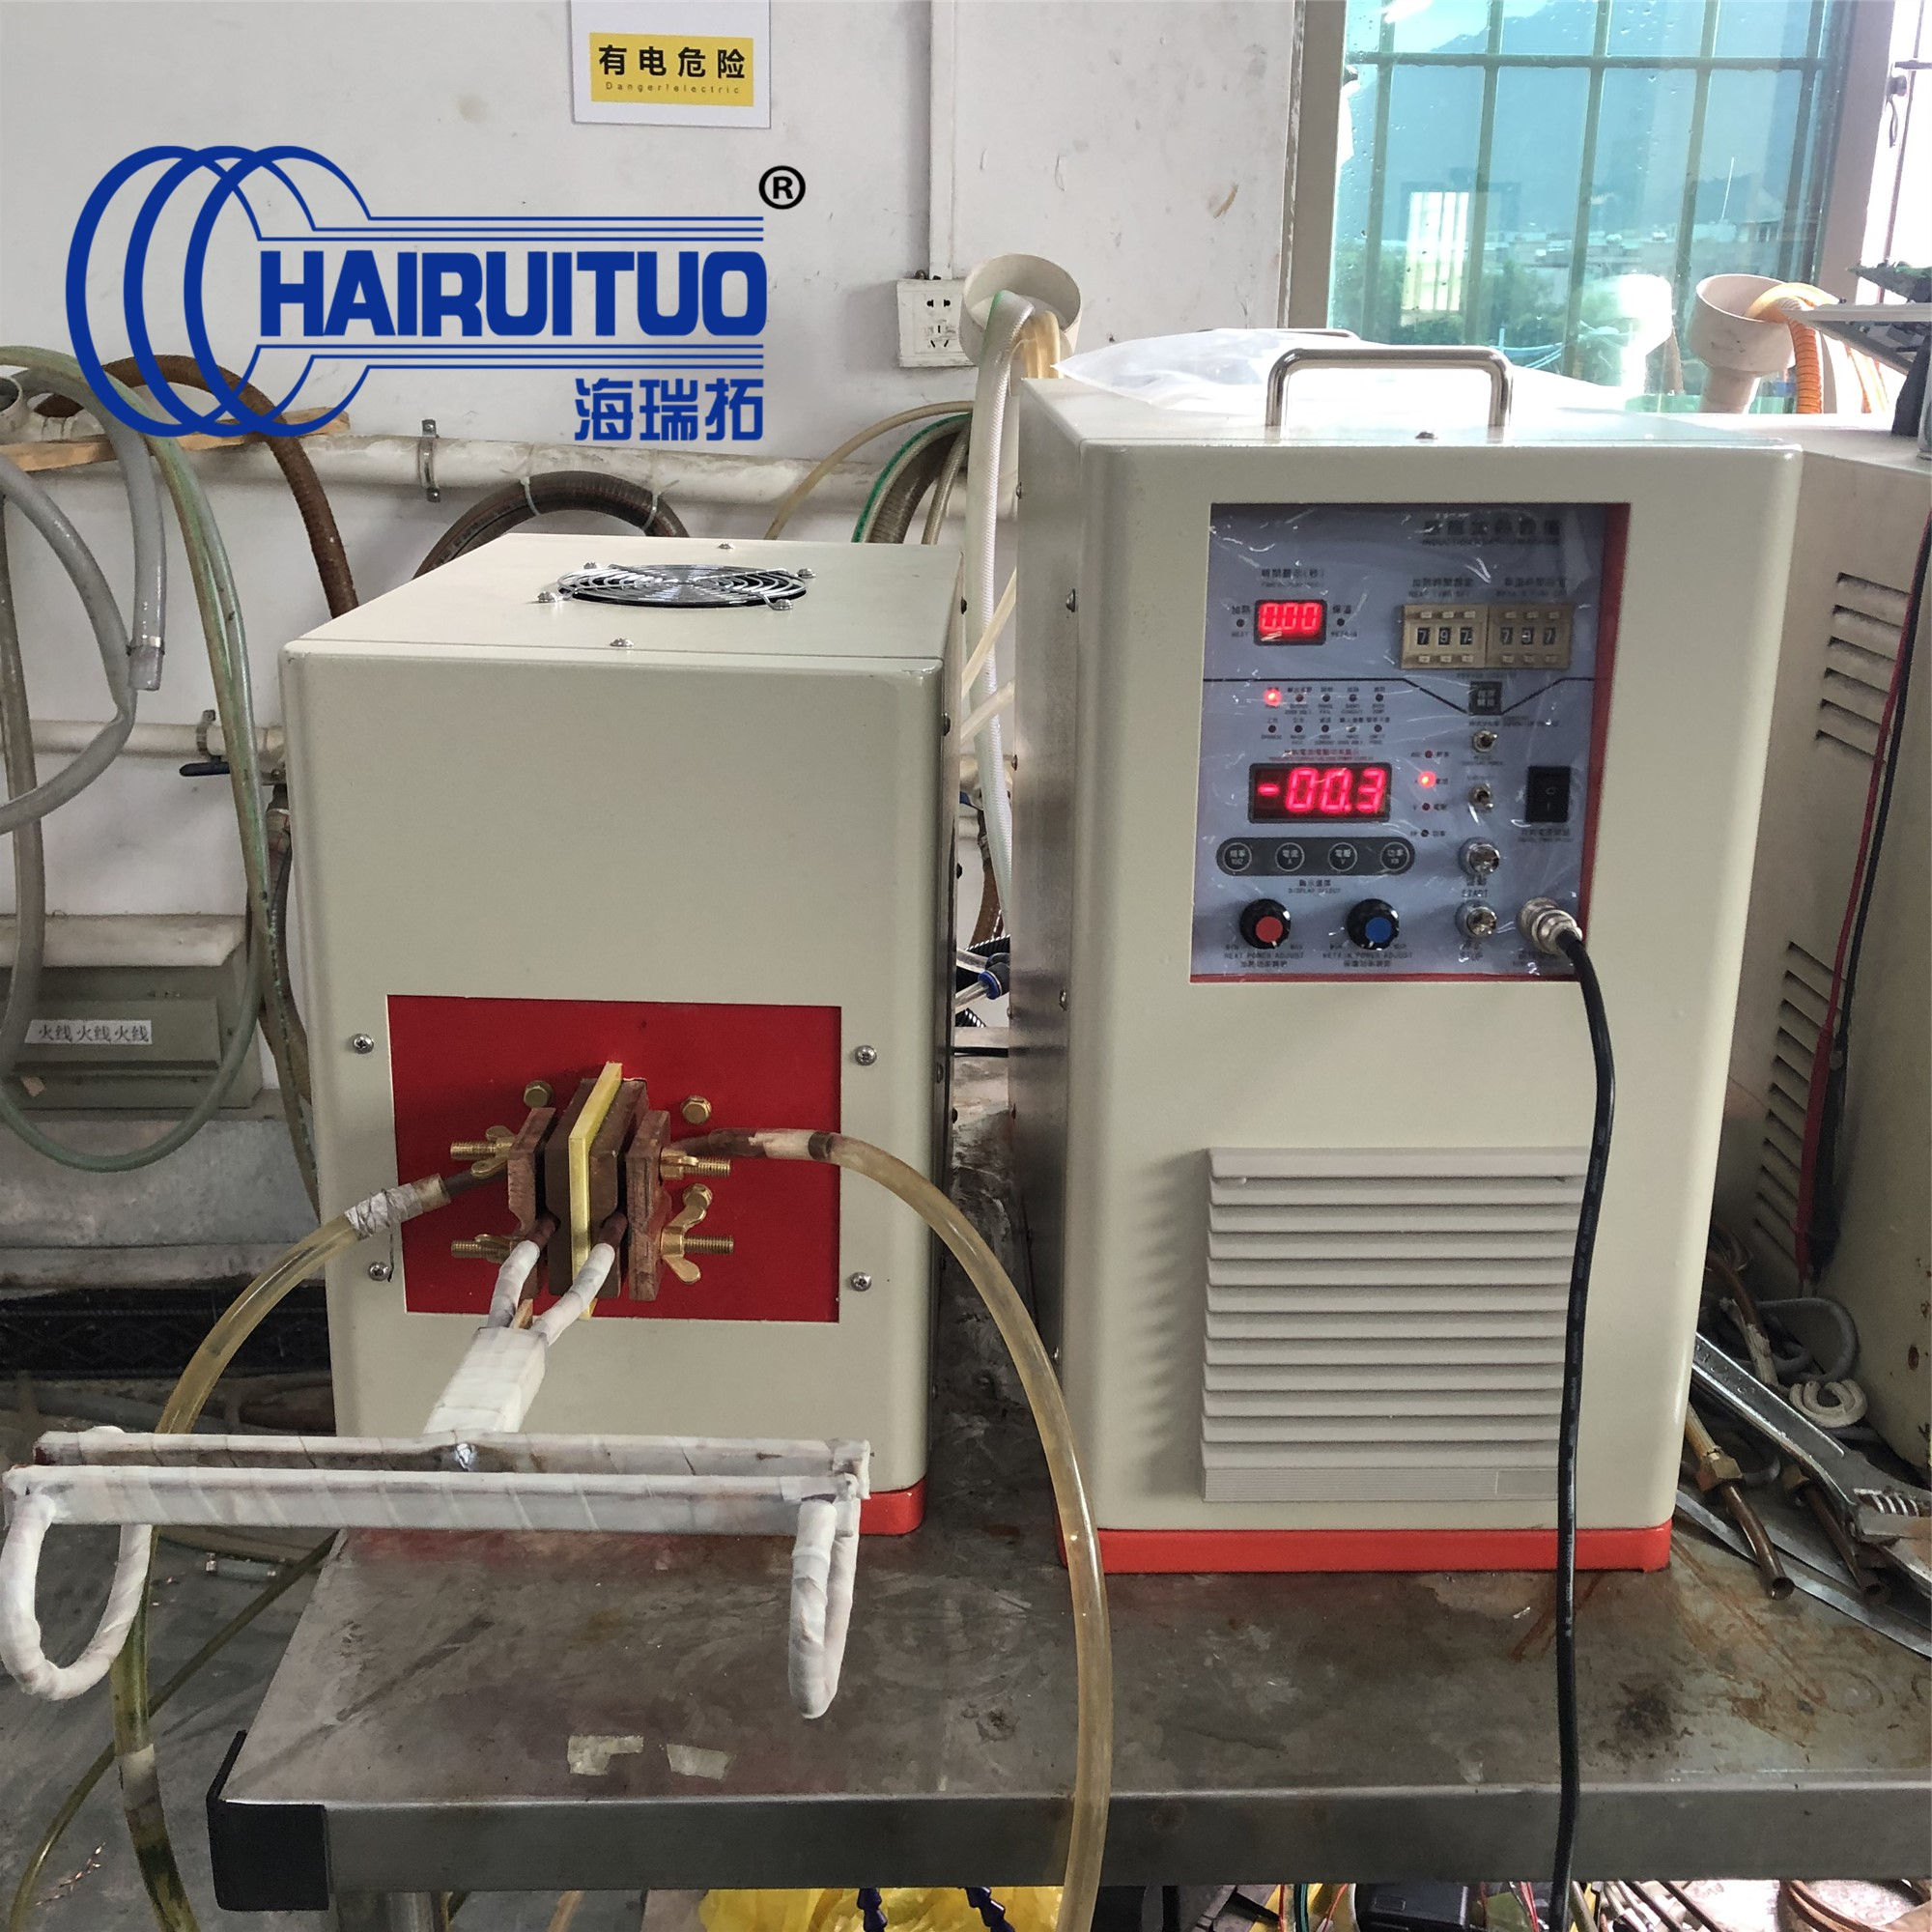 20KW induction heating machine for welding and quenching Ultrahigh  frequency induction heater machine Magnetic Induction Heaters  - AliExpress